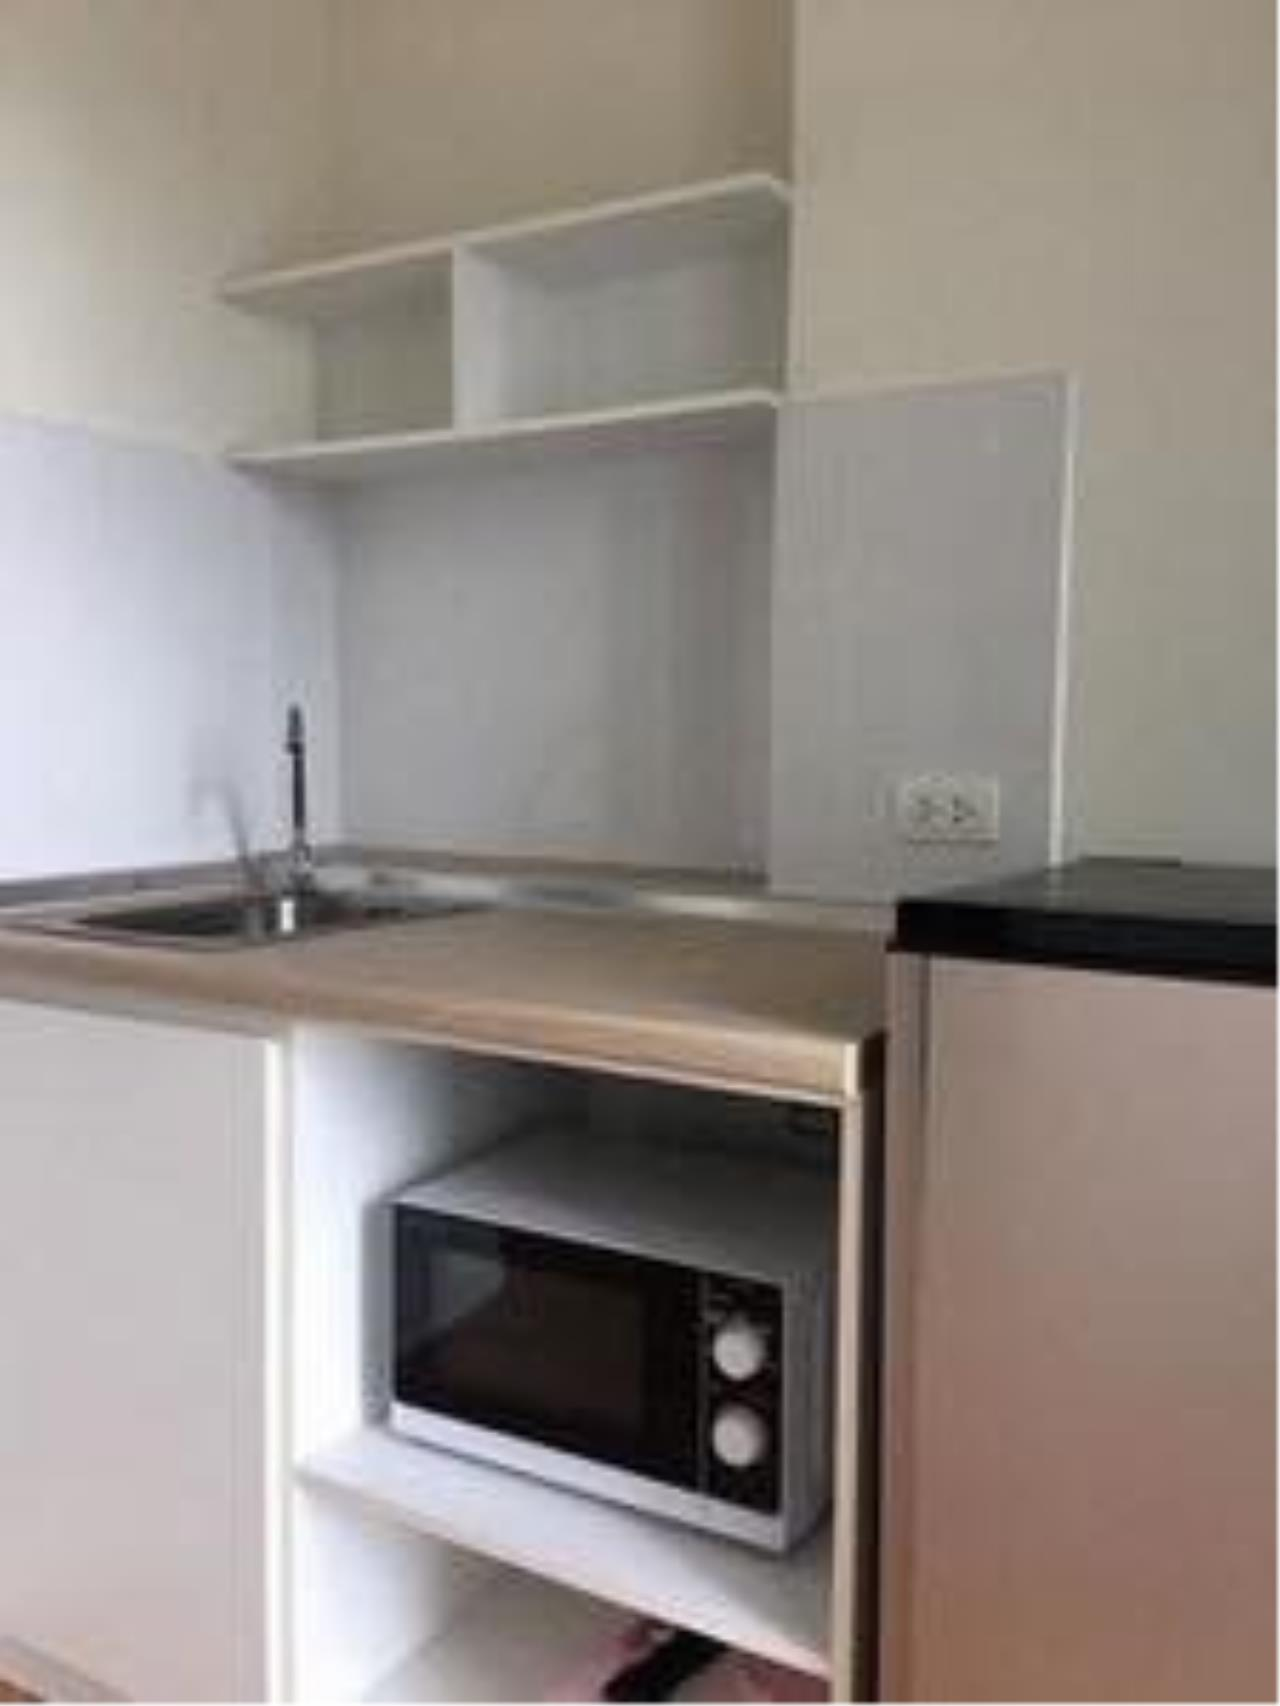 First Choice Properties by Su Agent Agency's KP032 LUMPINI PARK PHETKASEM 98. for rent 6,500/month. 1bed . 23 sq.m. 3